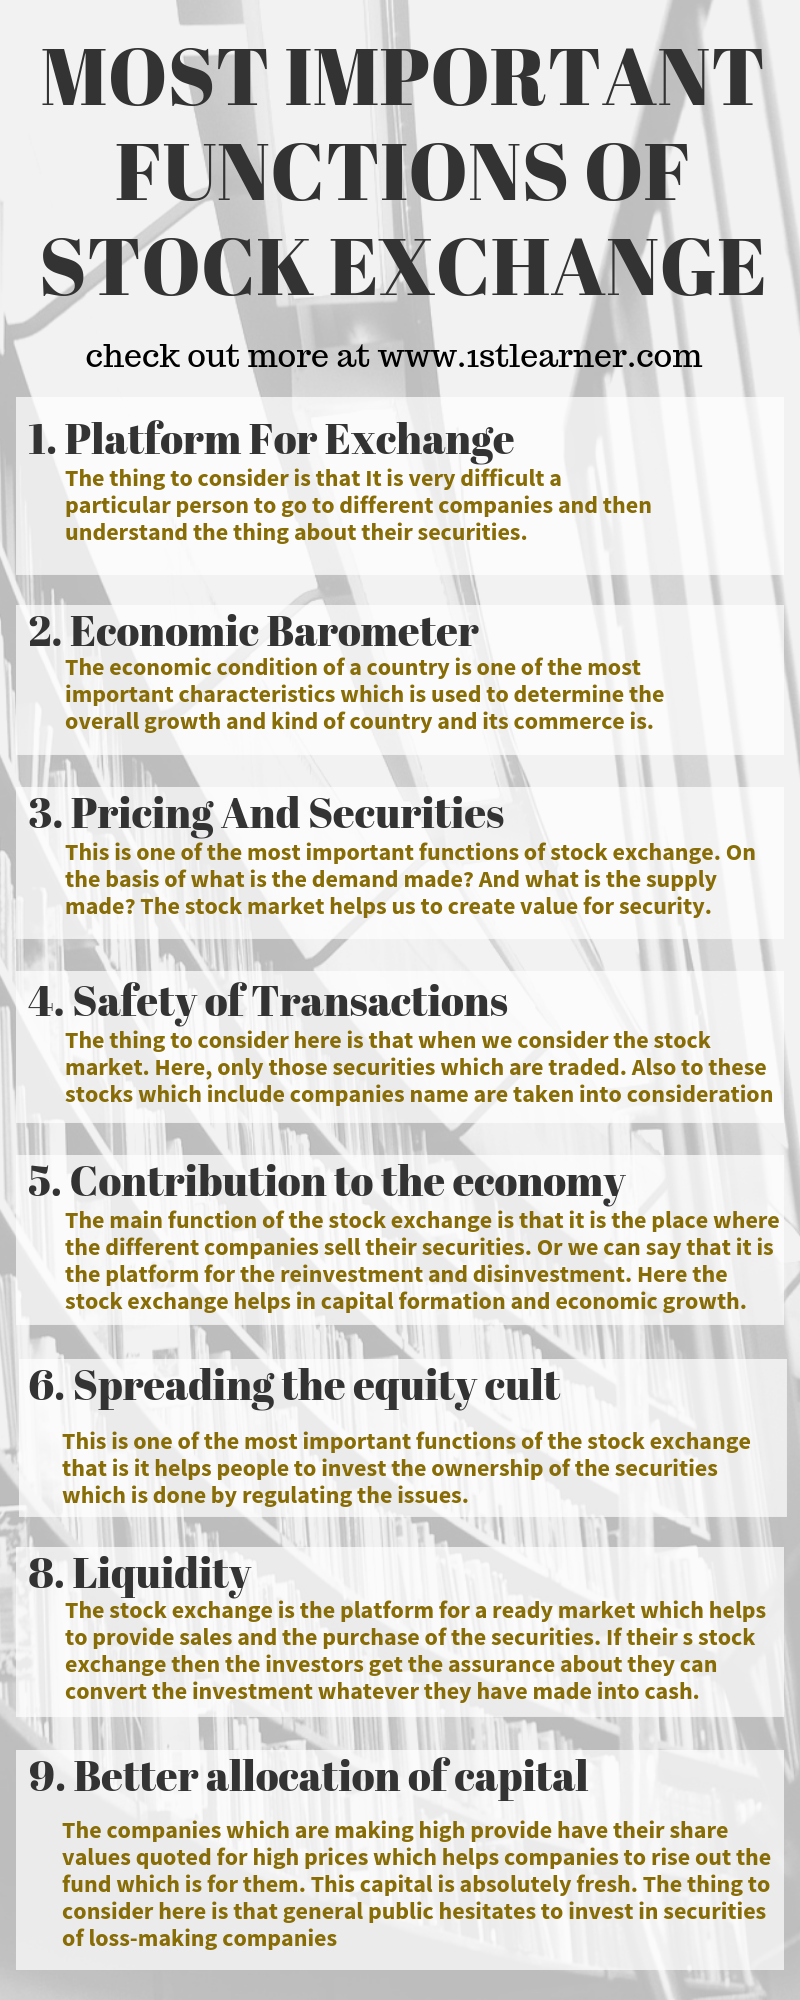 10 Most Important Functions Of Stock Exchange 1stlearner Com